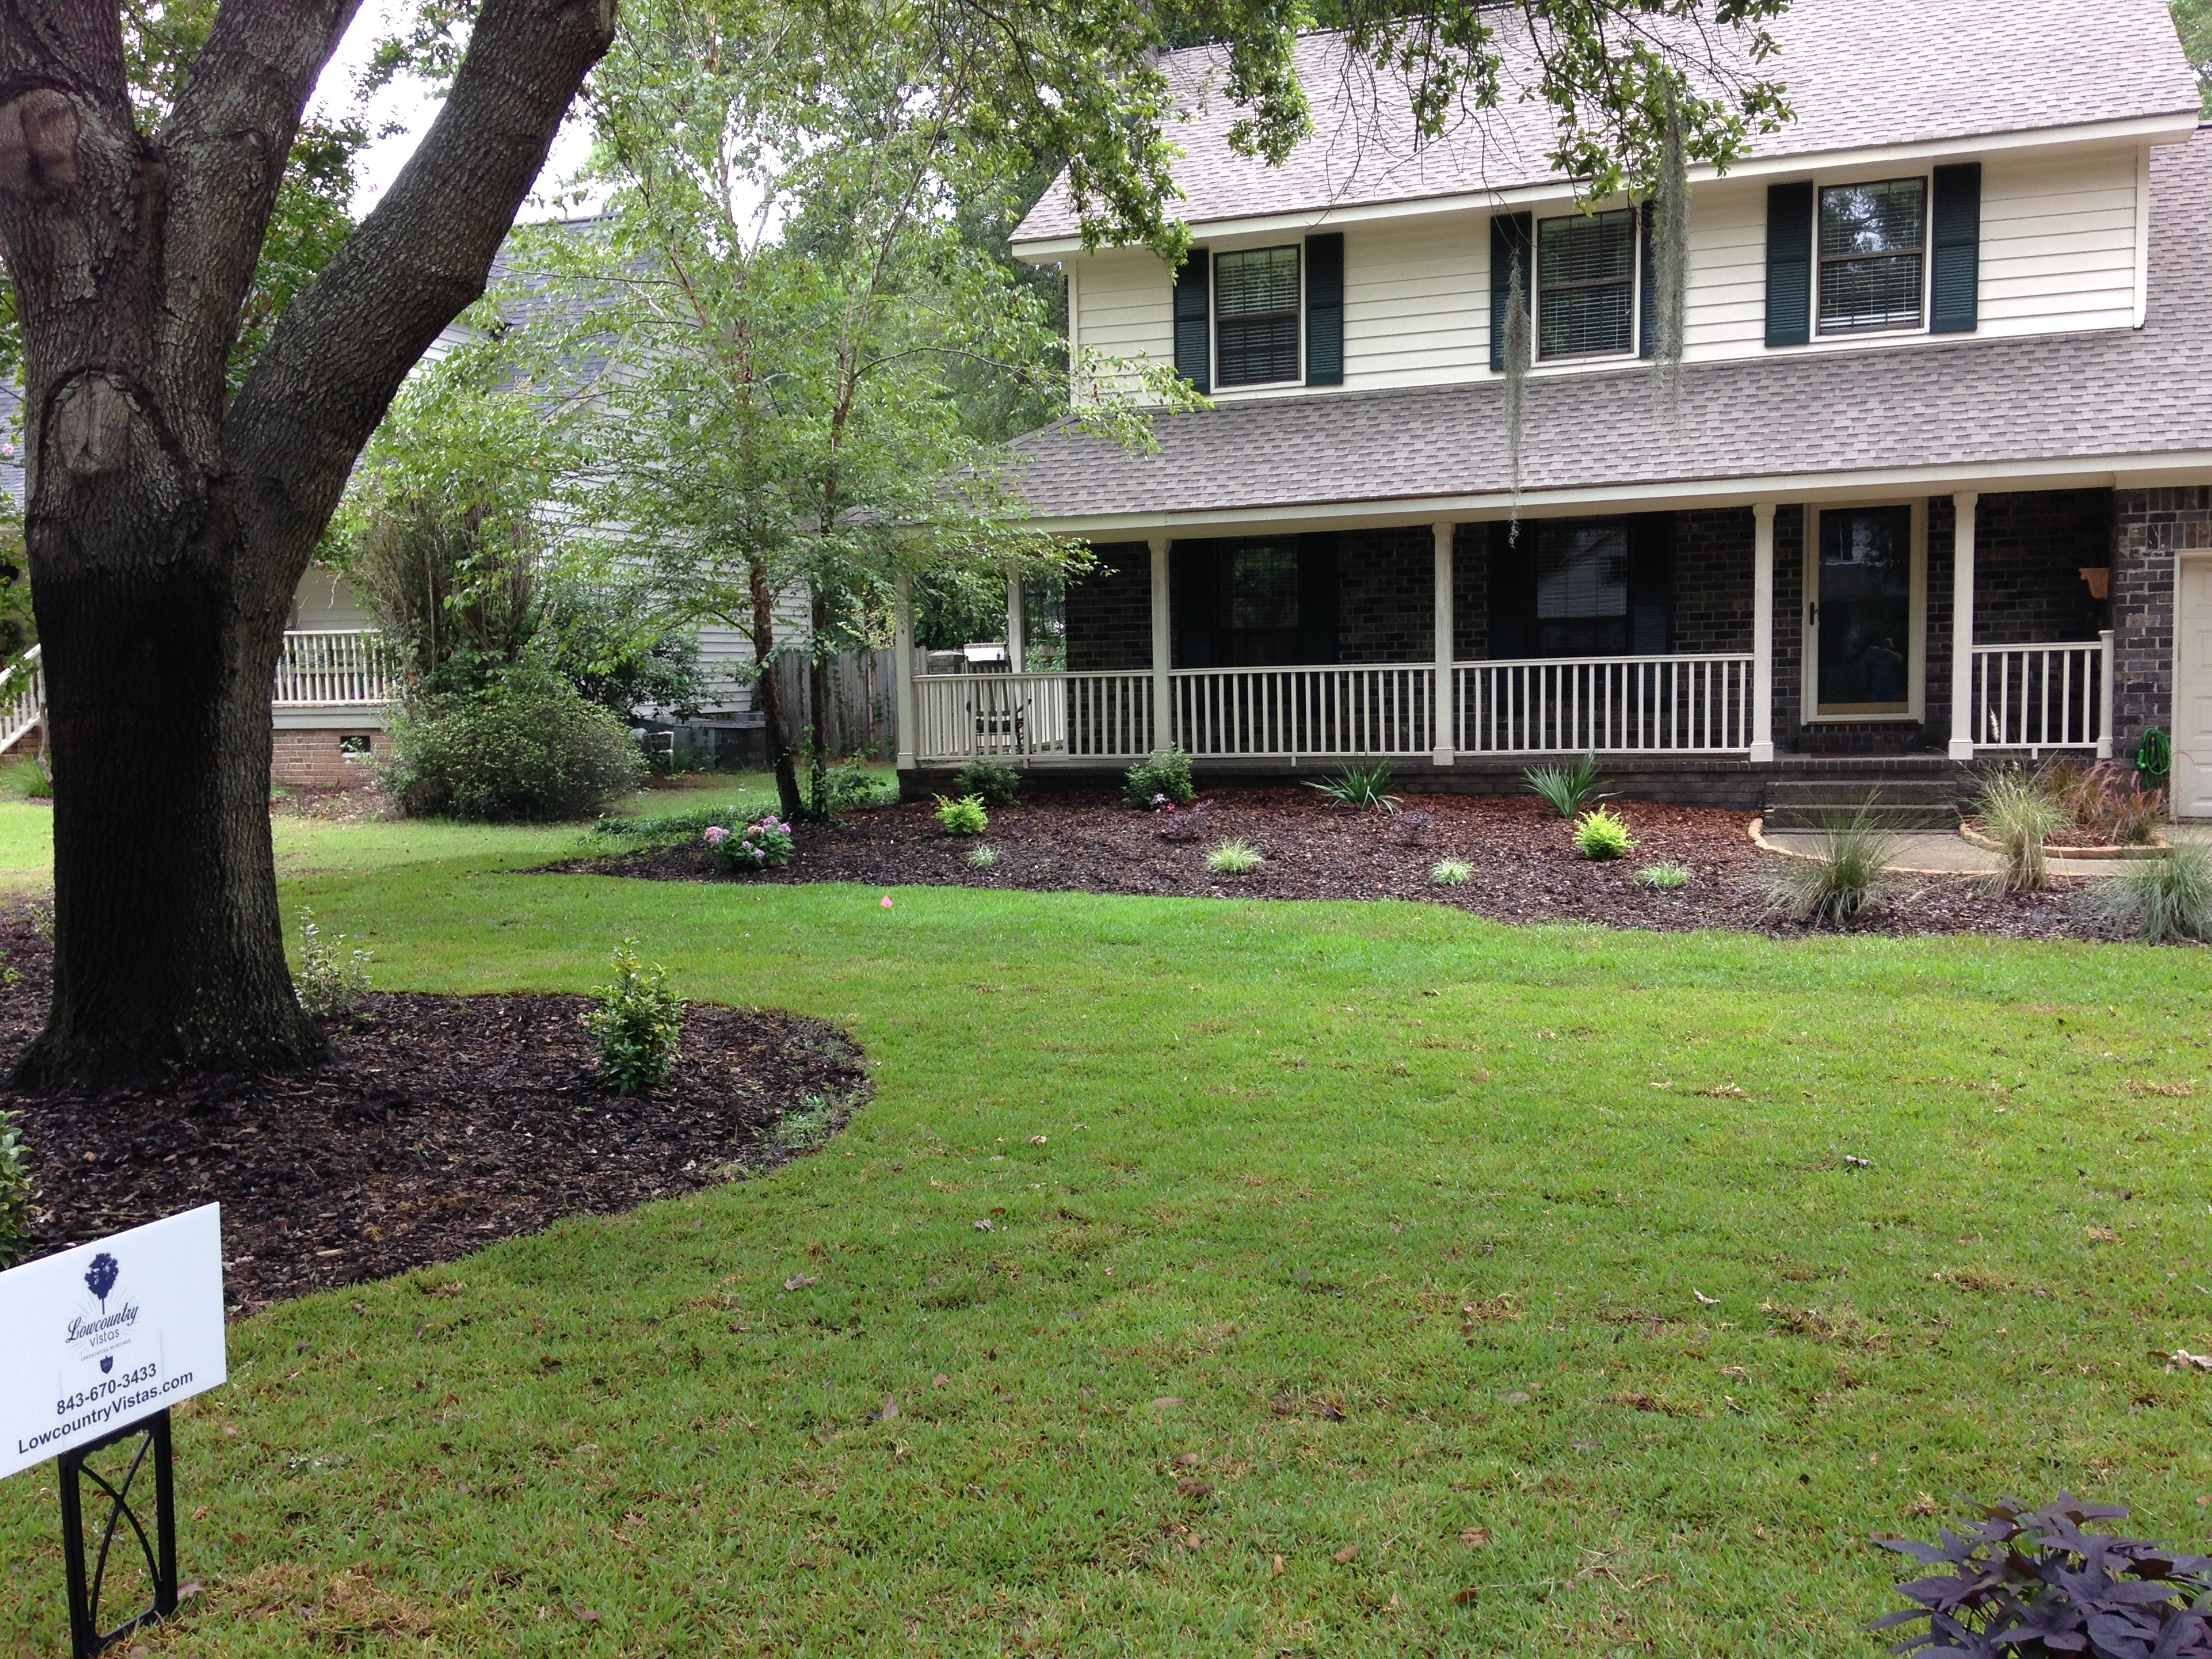 Charleston Residential Landscape Design - Yard Makeover After 2